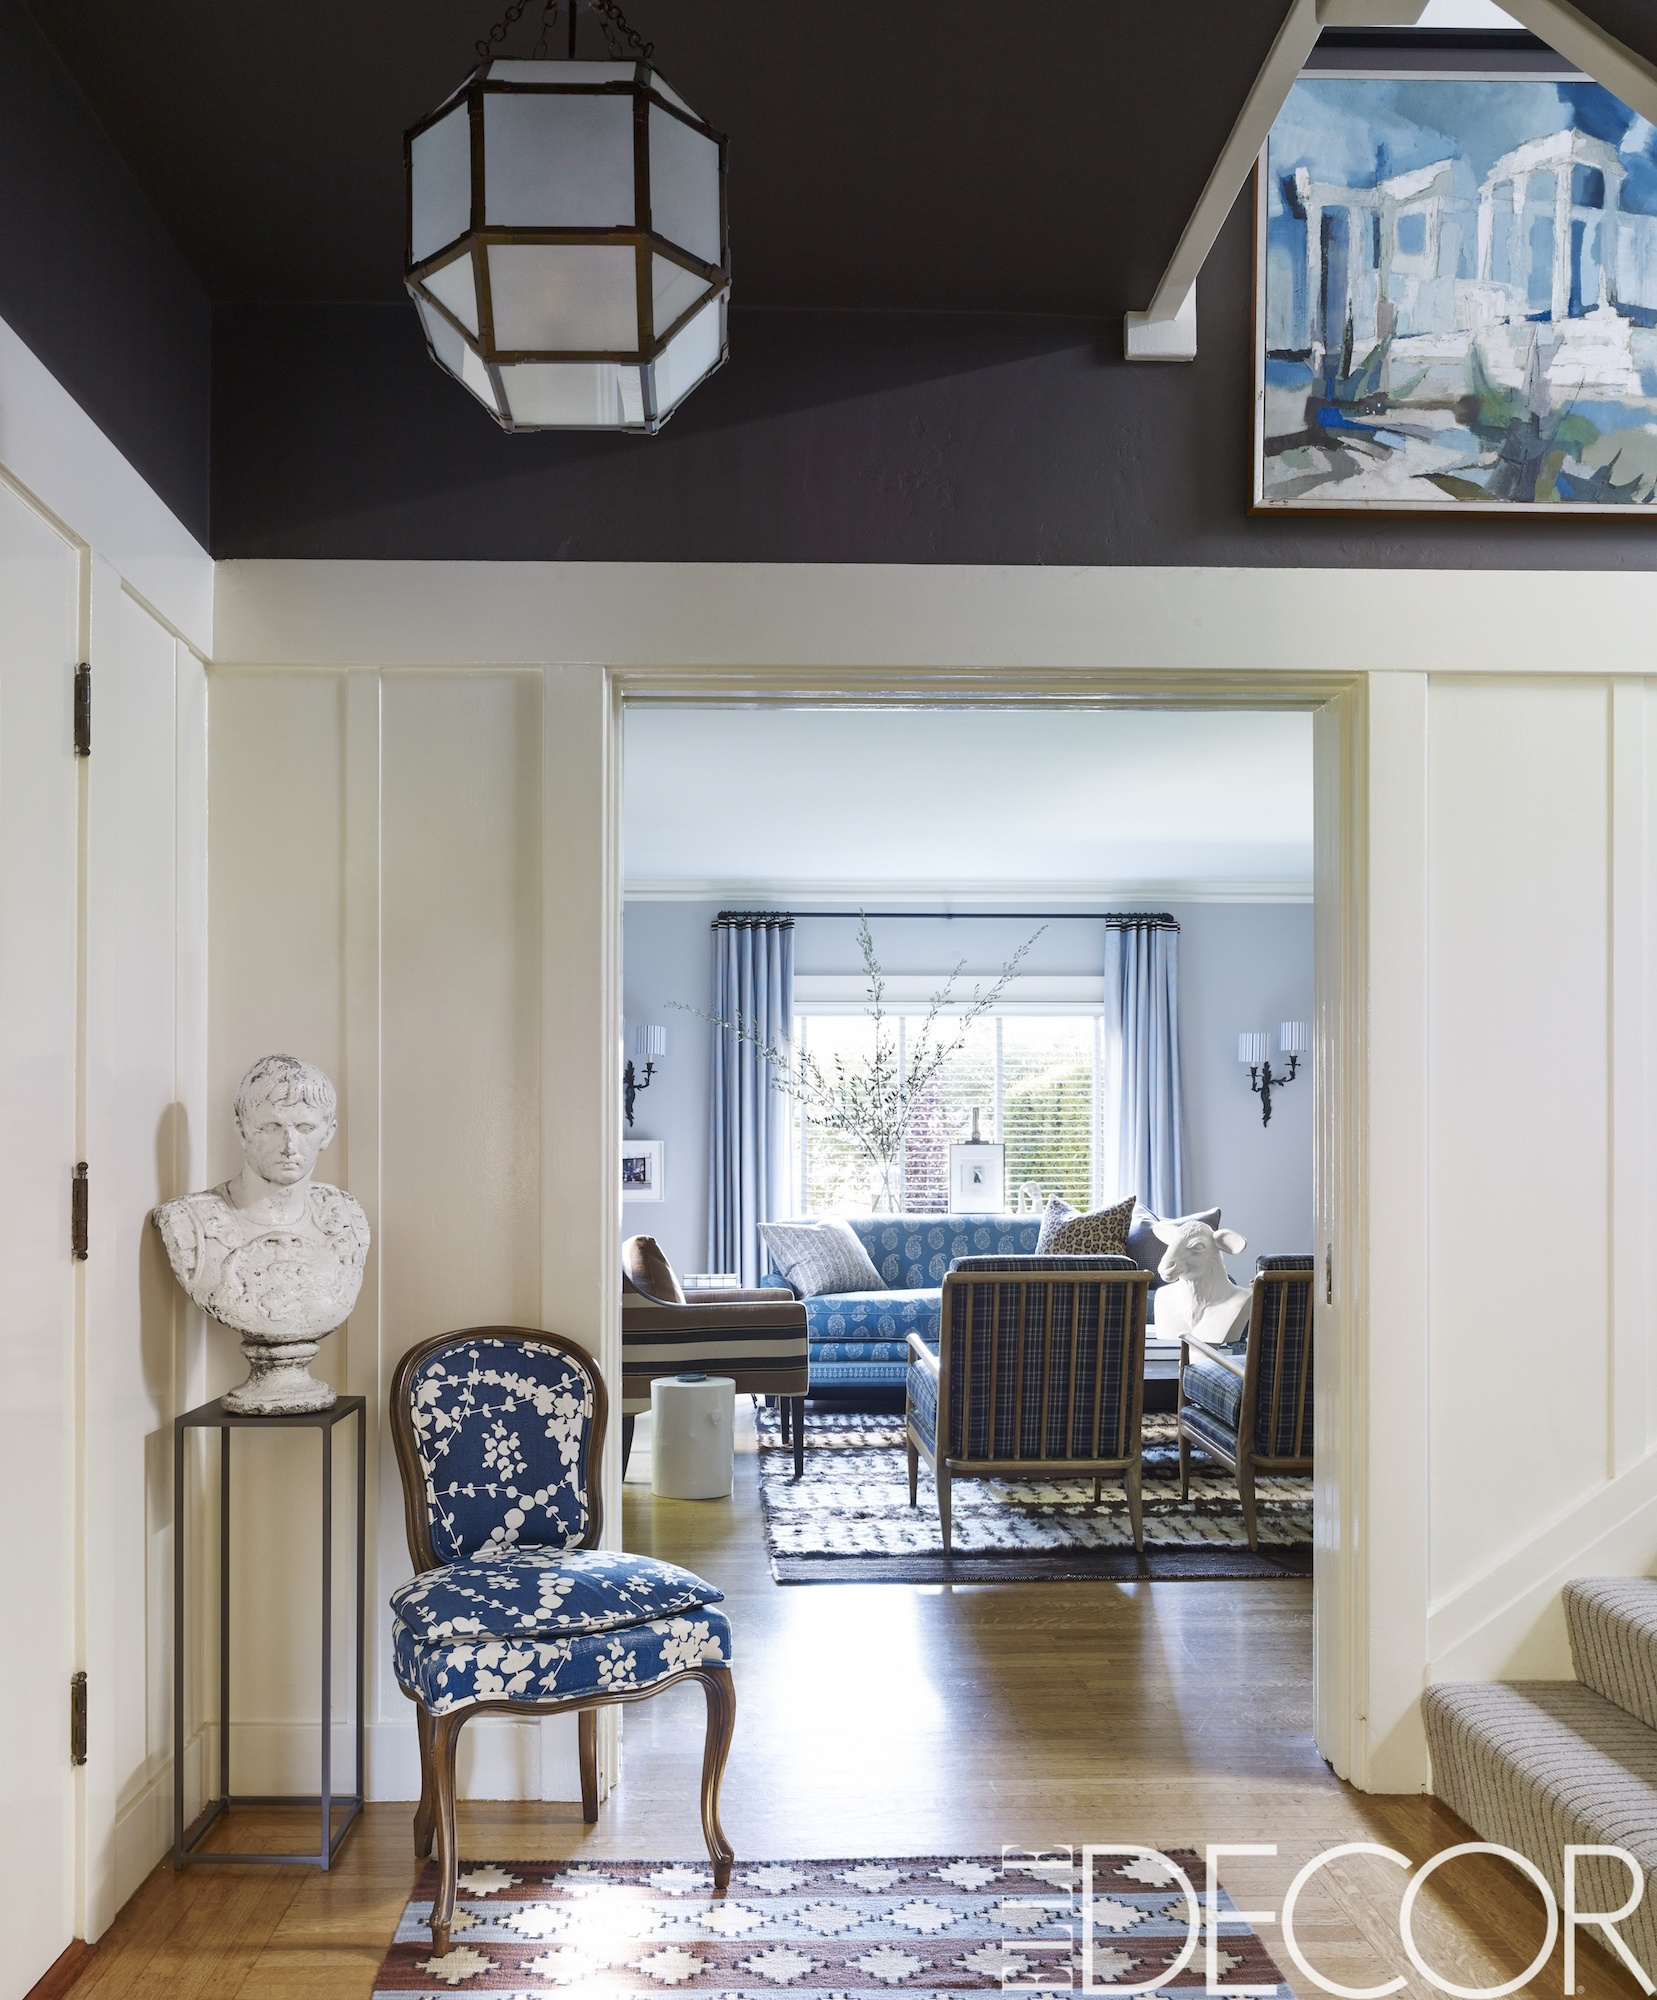 ESSENTIAL HOME BEAUTIFUL HOME IDEAS CEILING BEAUTIFUL CEILING IDEAS living room curtains oakland 2 1489173367